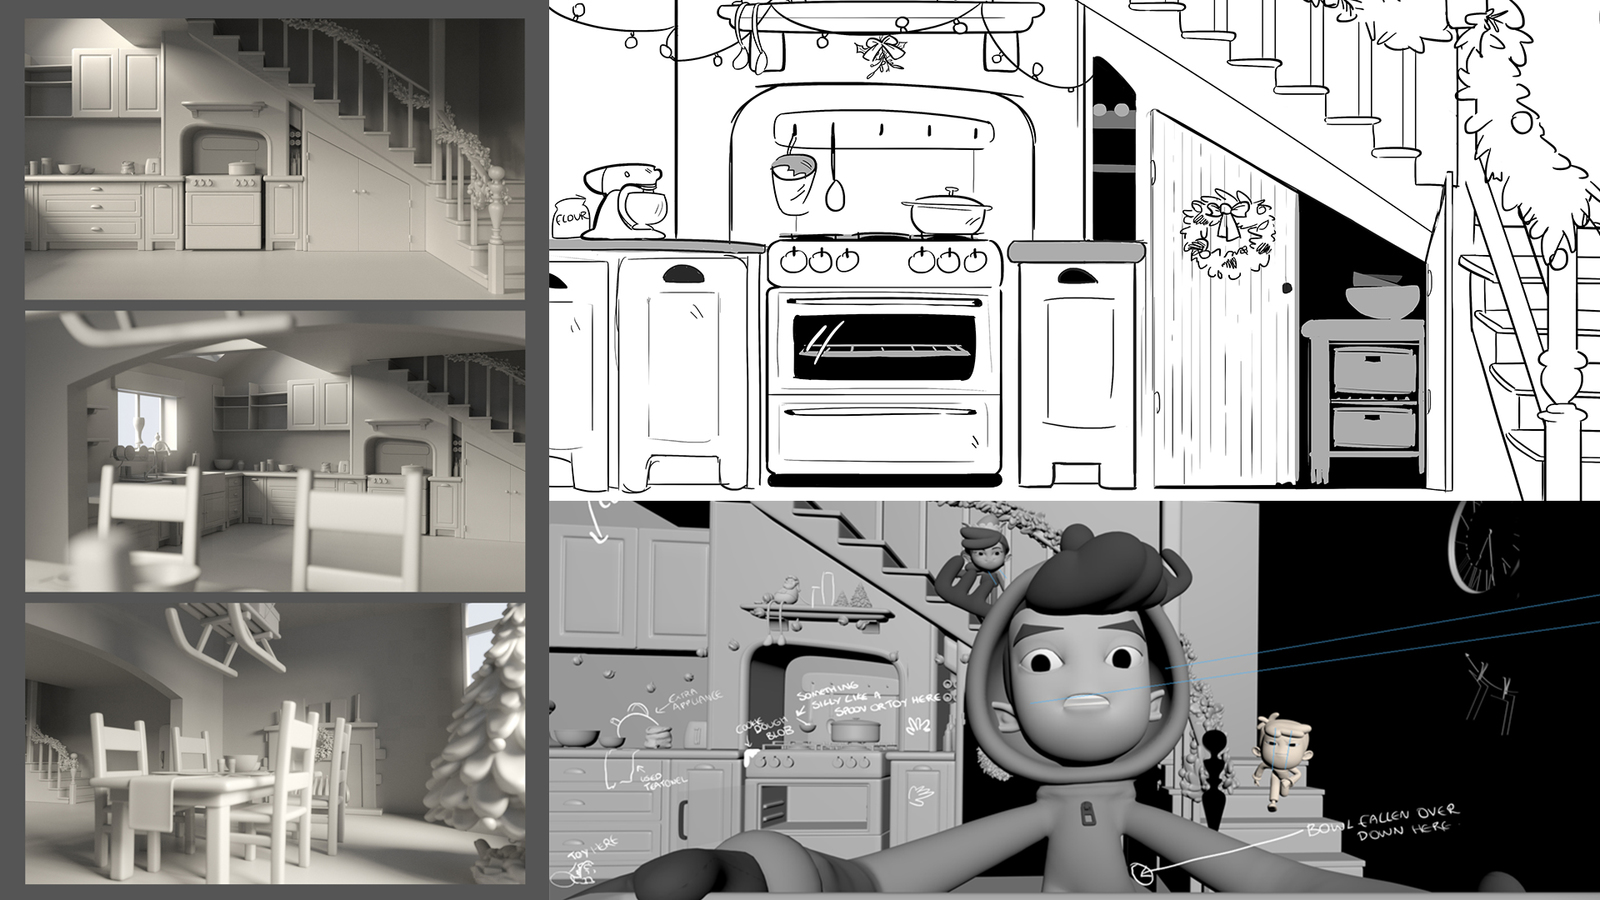 compilation of images from kitchen scene- 3D greyscale through to line art sets and directors notes for design considerations